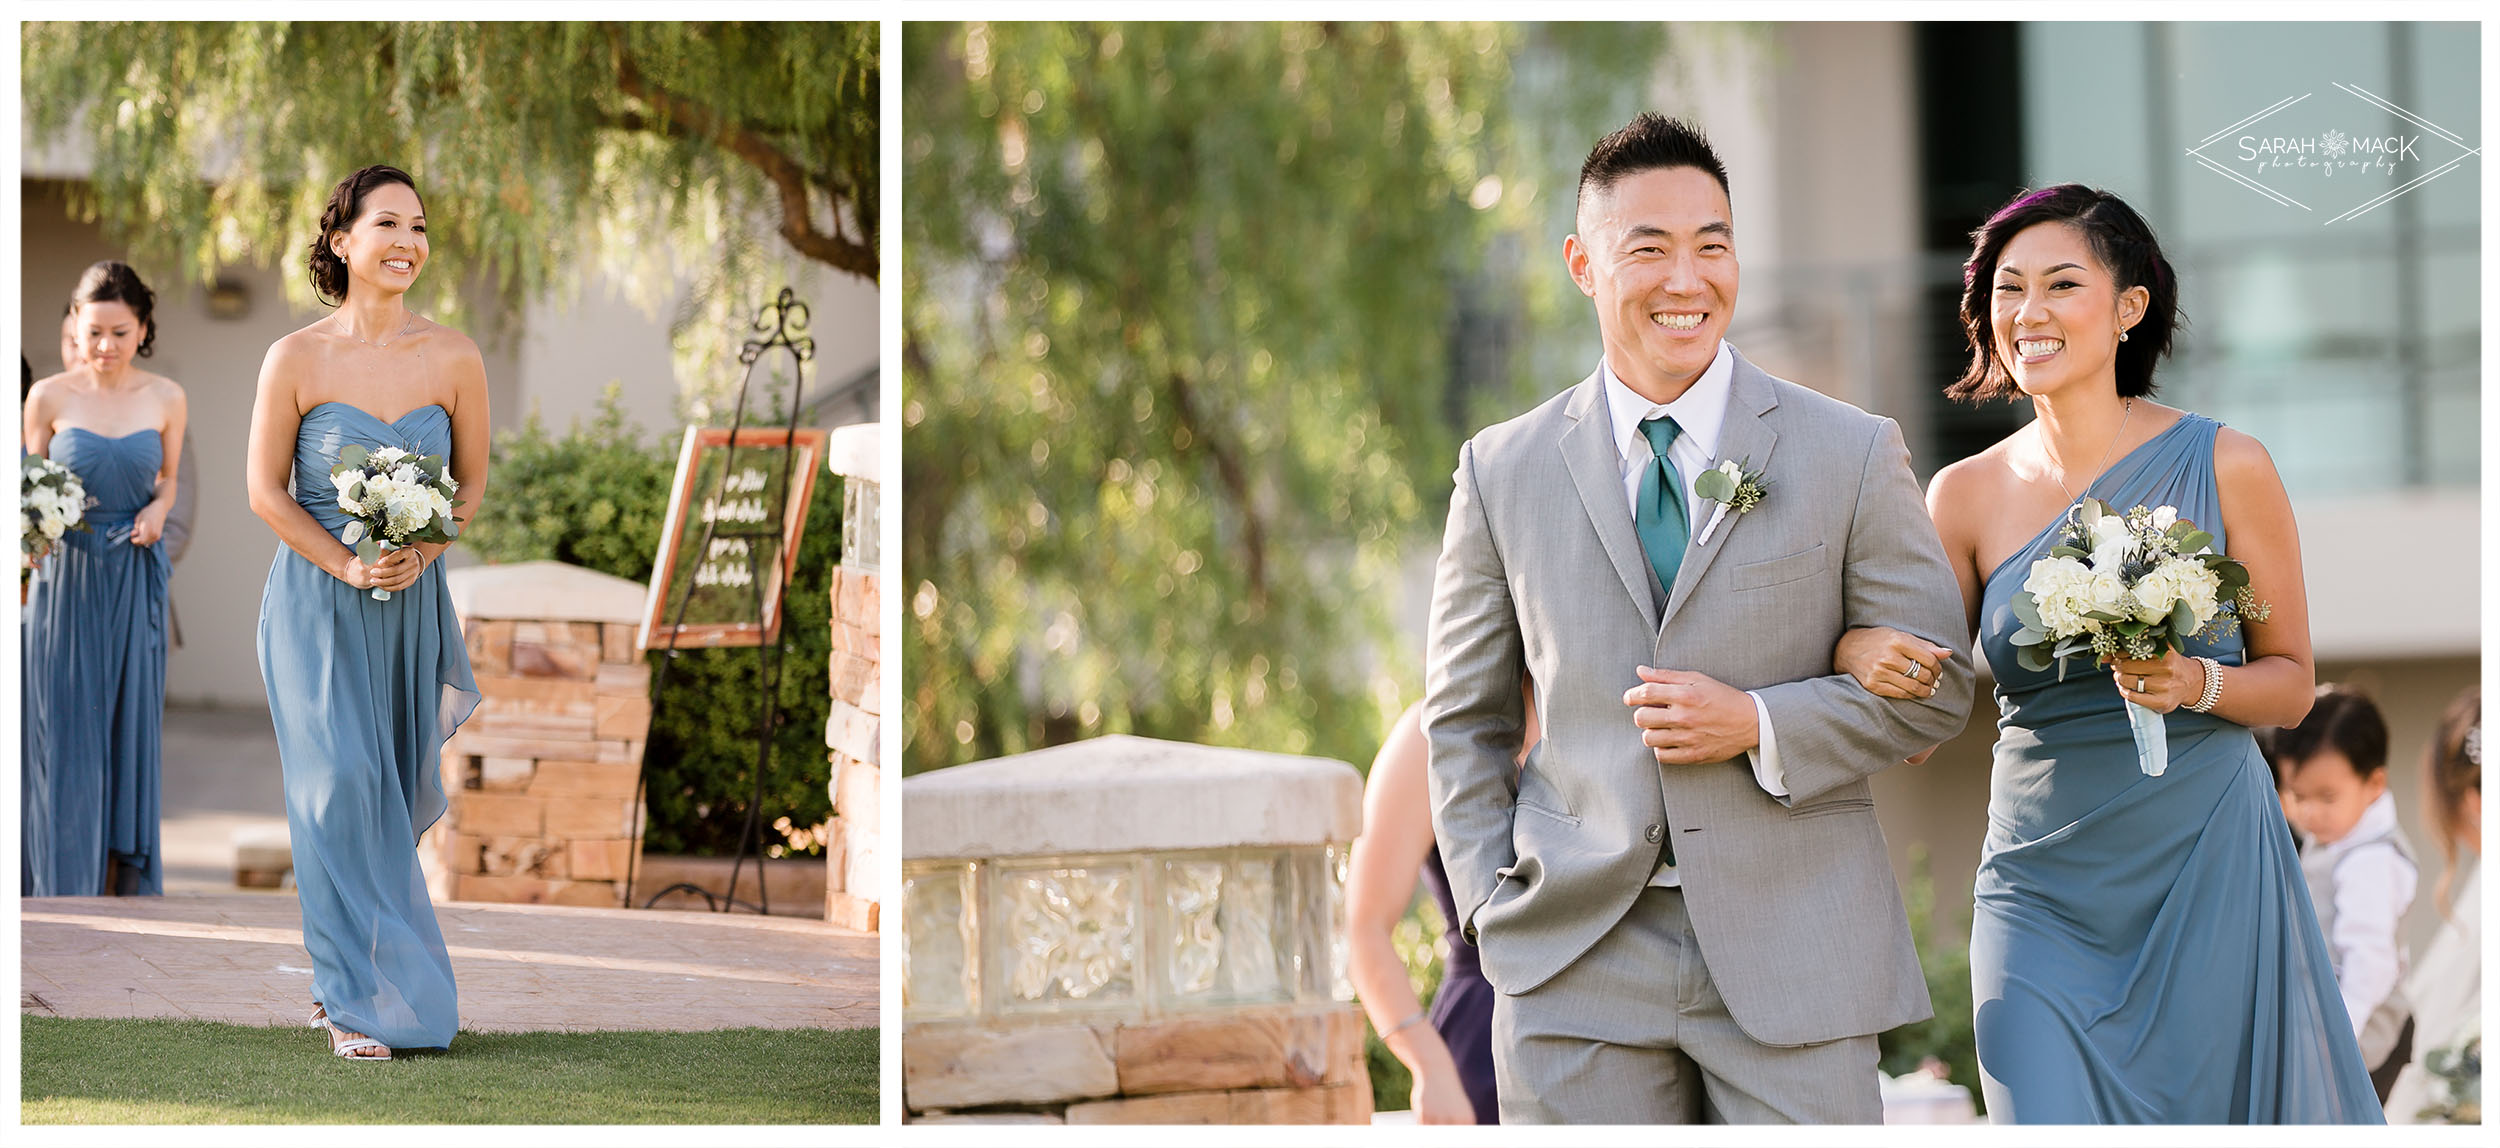 ME-Black-Gold-Country-Club-Yorba-Linda-Wedding-27.jpg